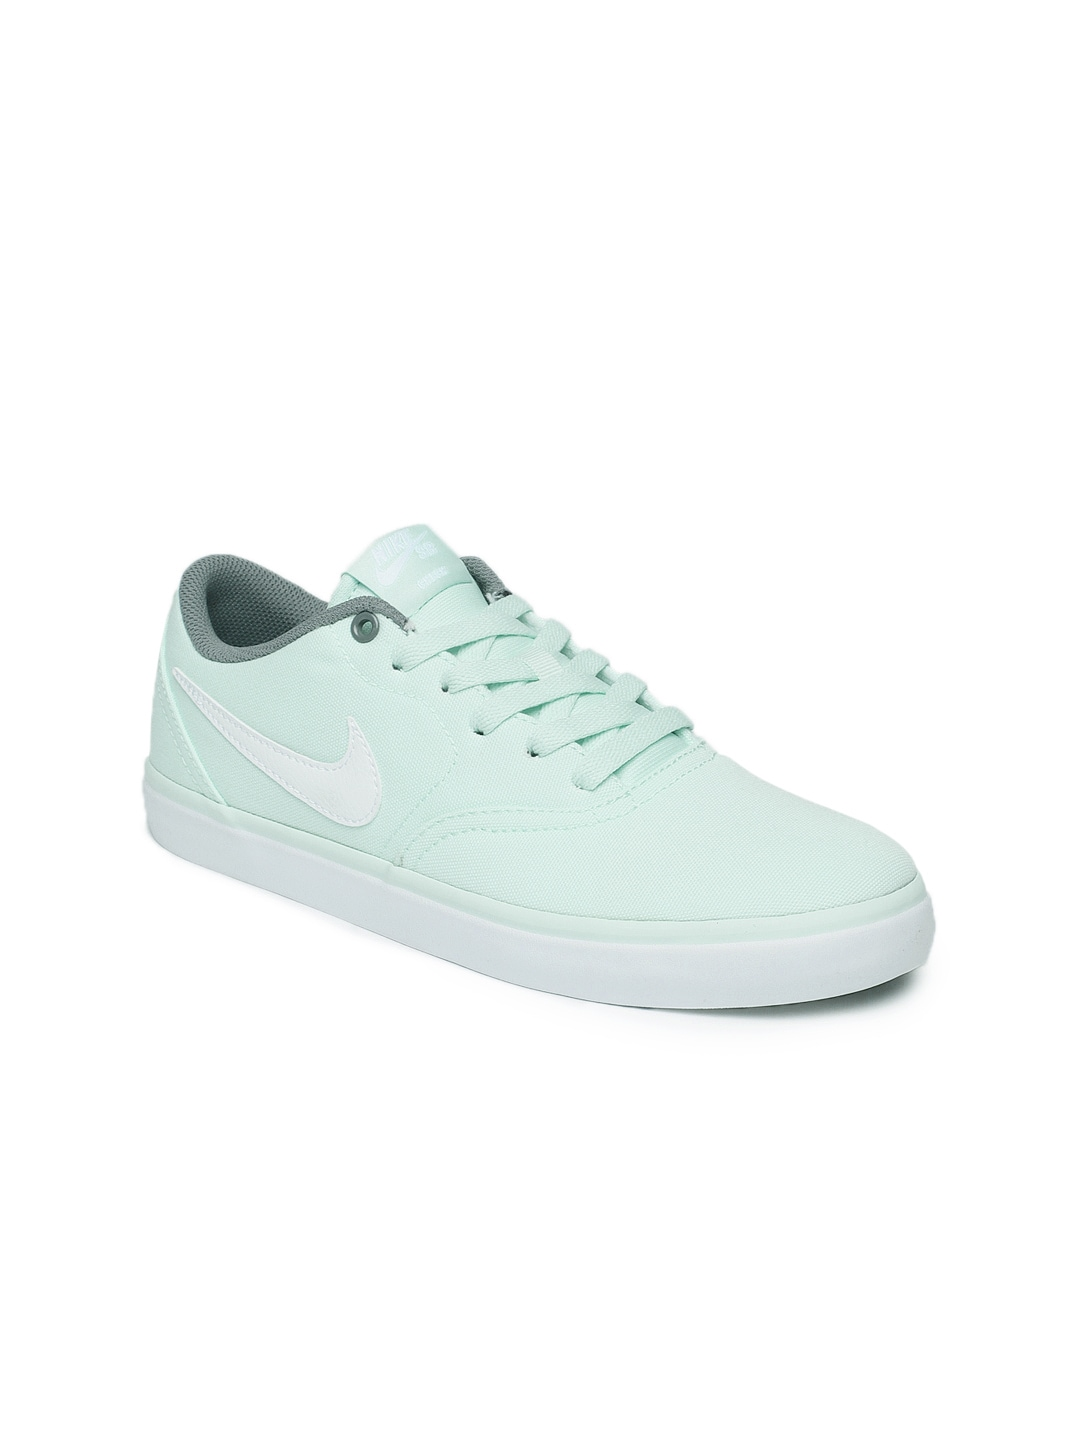 timeless design 3bffc 8149e Nike Shoes - Buy Nike Shoes for Men, Women   Kids Online   Myntra